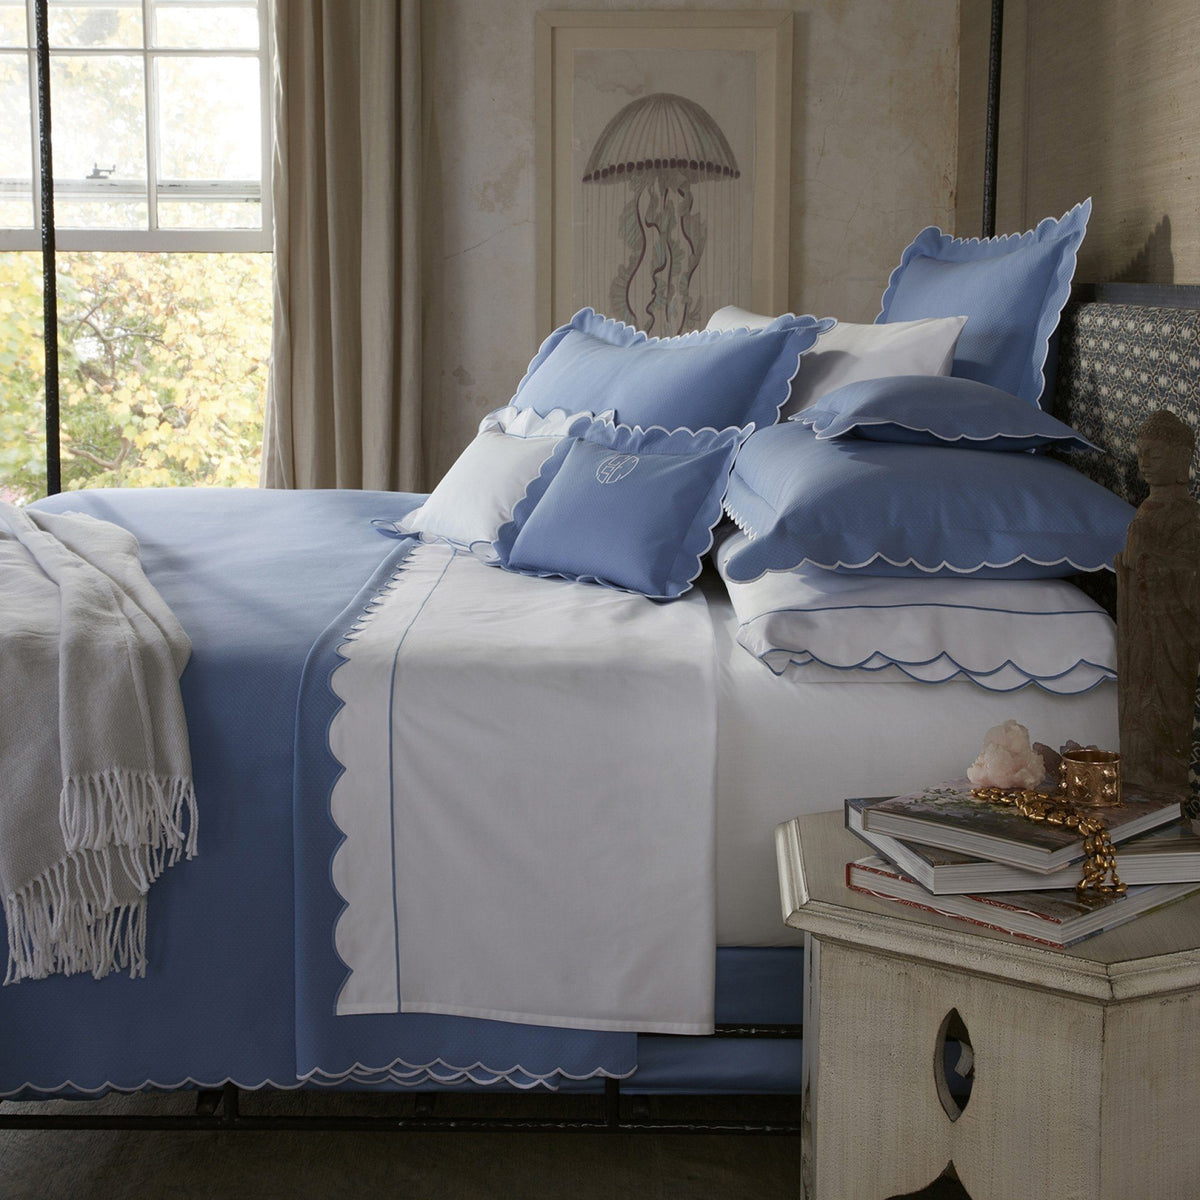 Diamond Pique Duvets By Matouk Fig Linens And Home